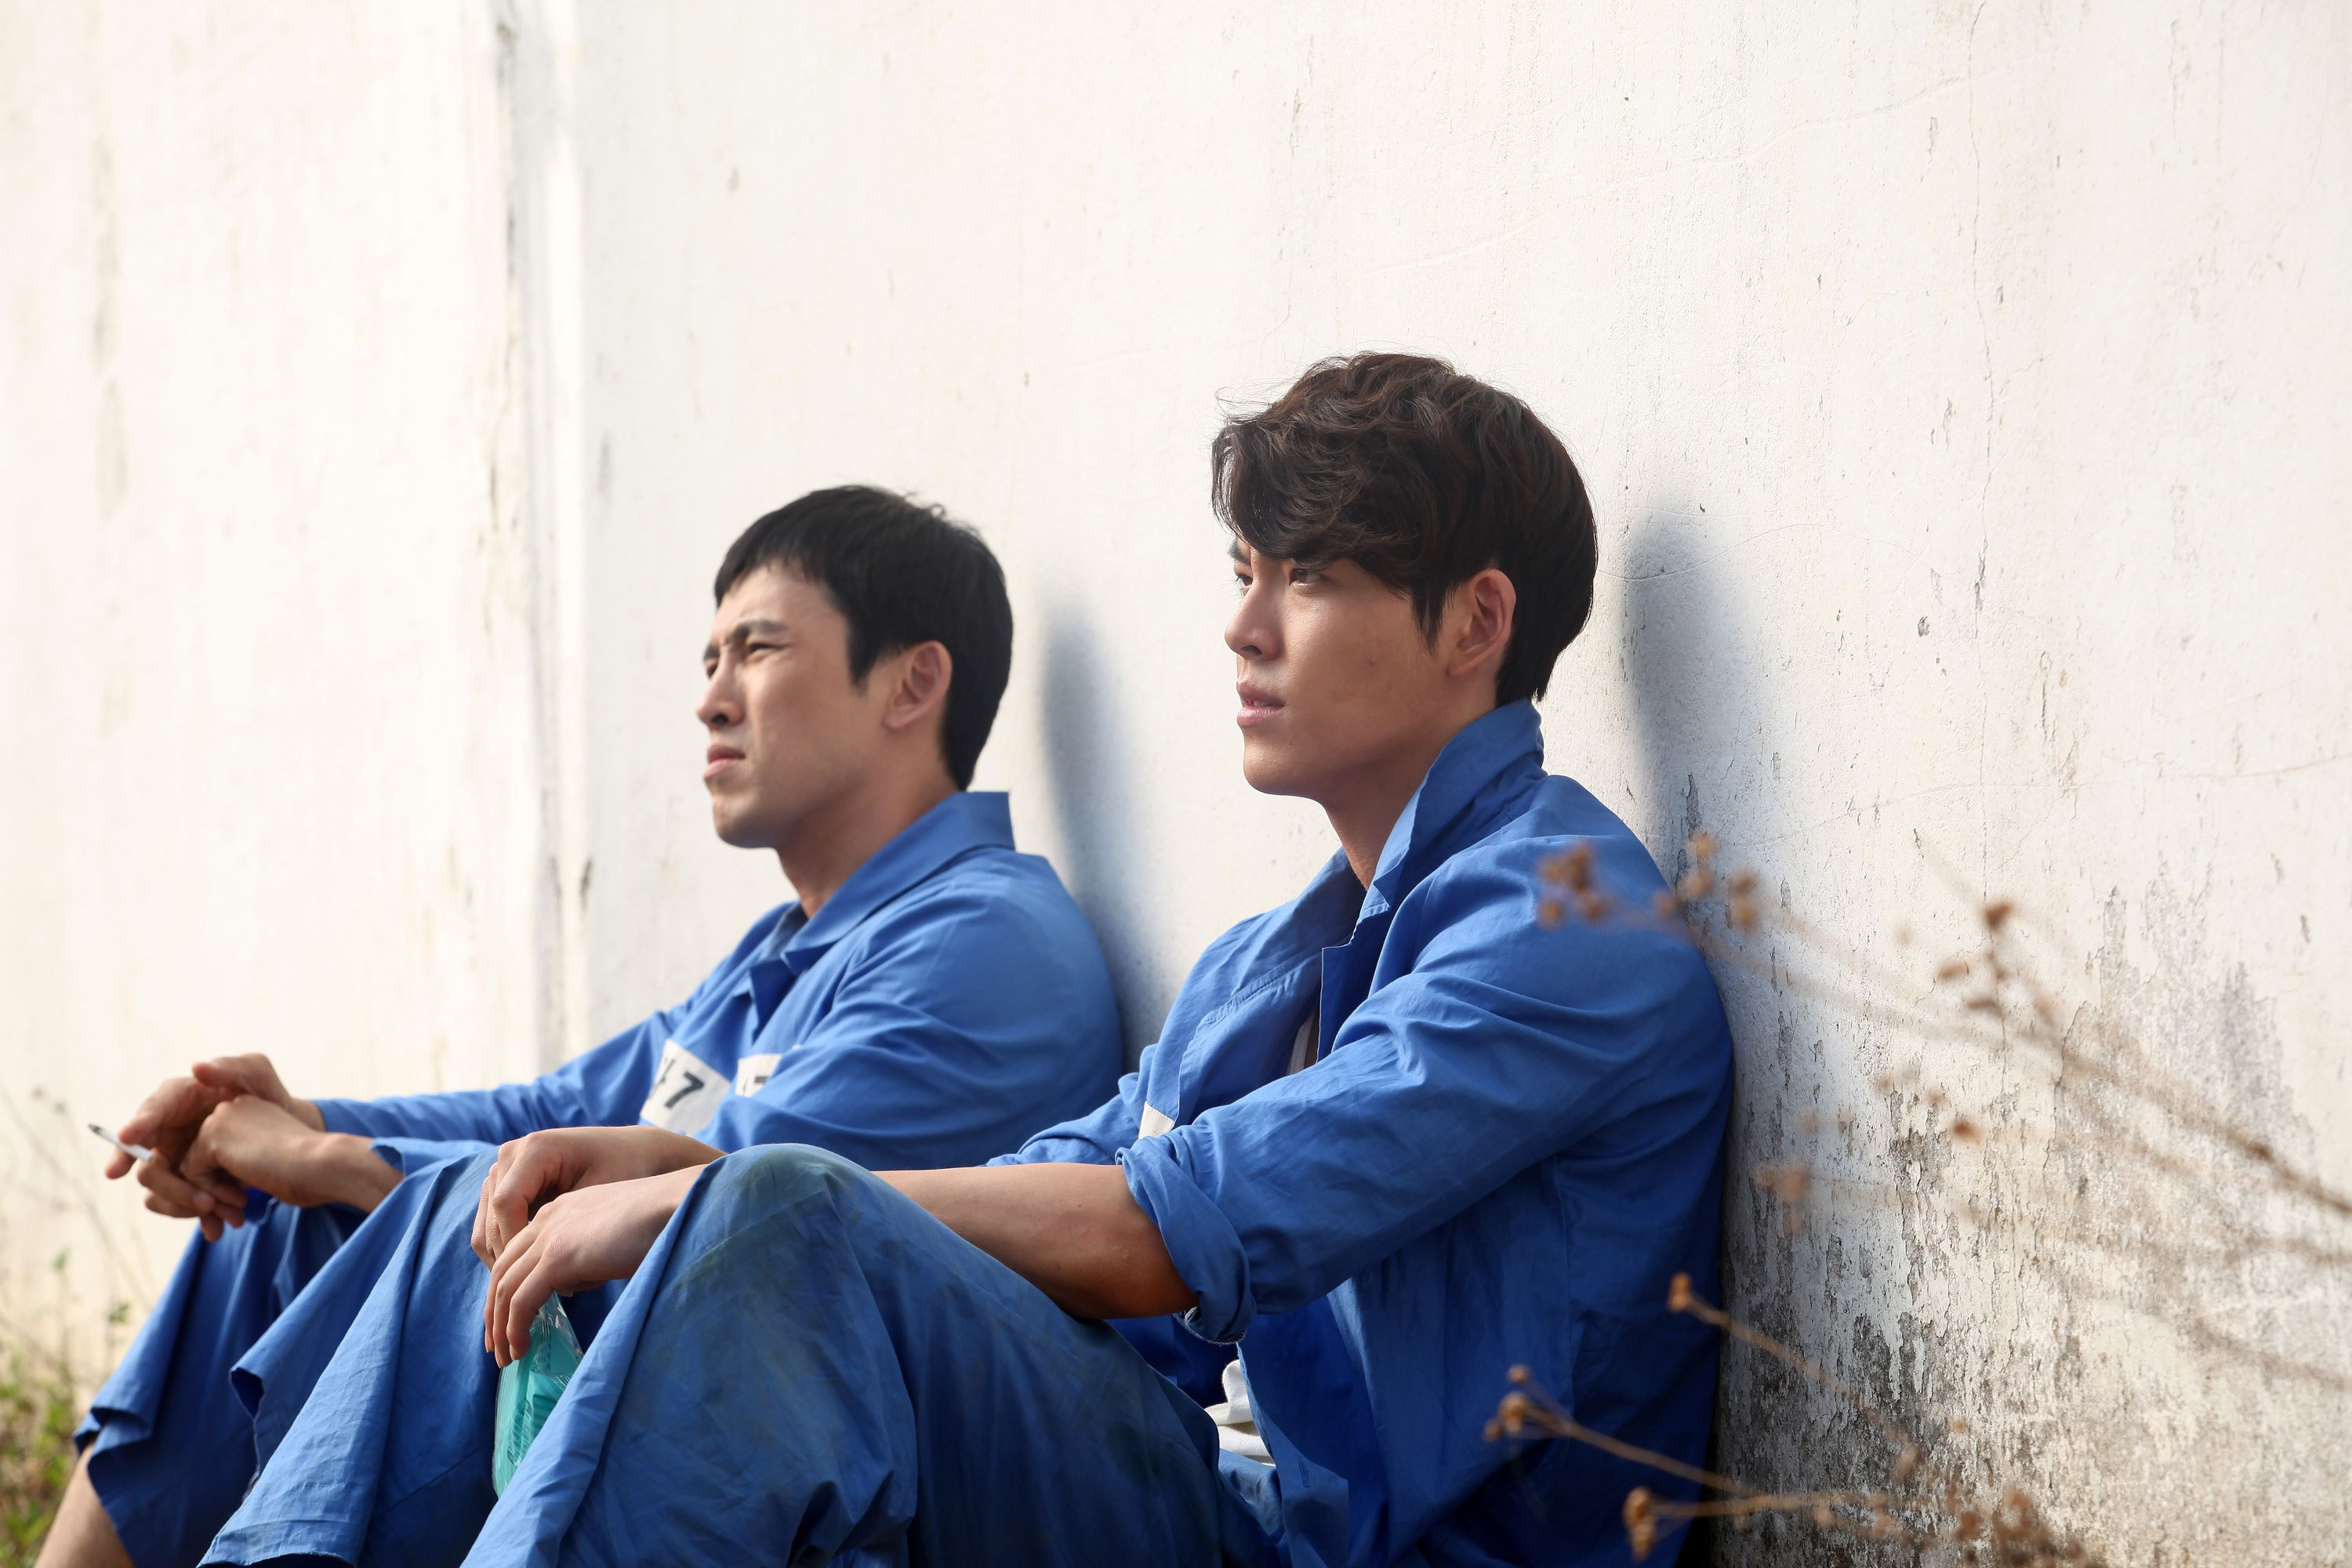 Jail Joon Suk and Sung Hoon